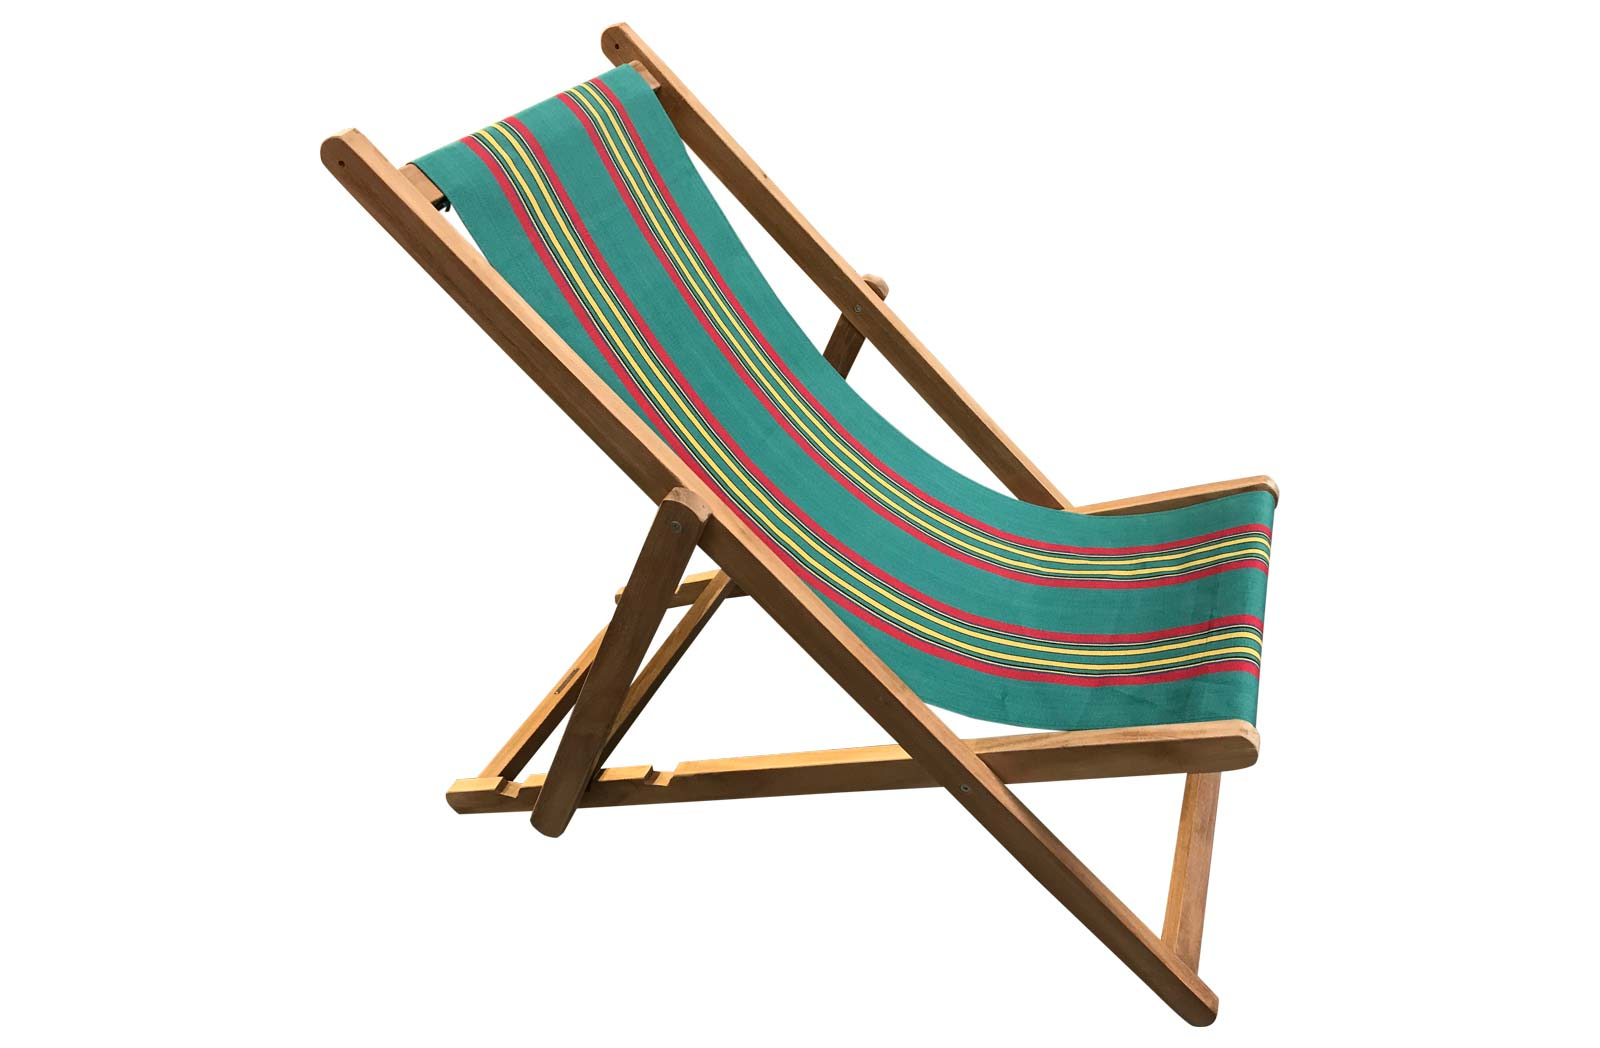 Deckchairs | Buy Folding Wooden Deck Chairs Jade green, red, yellow